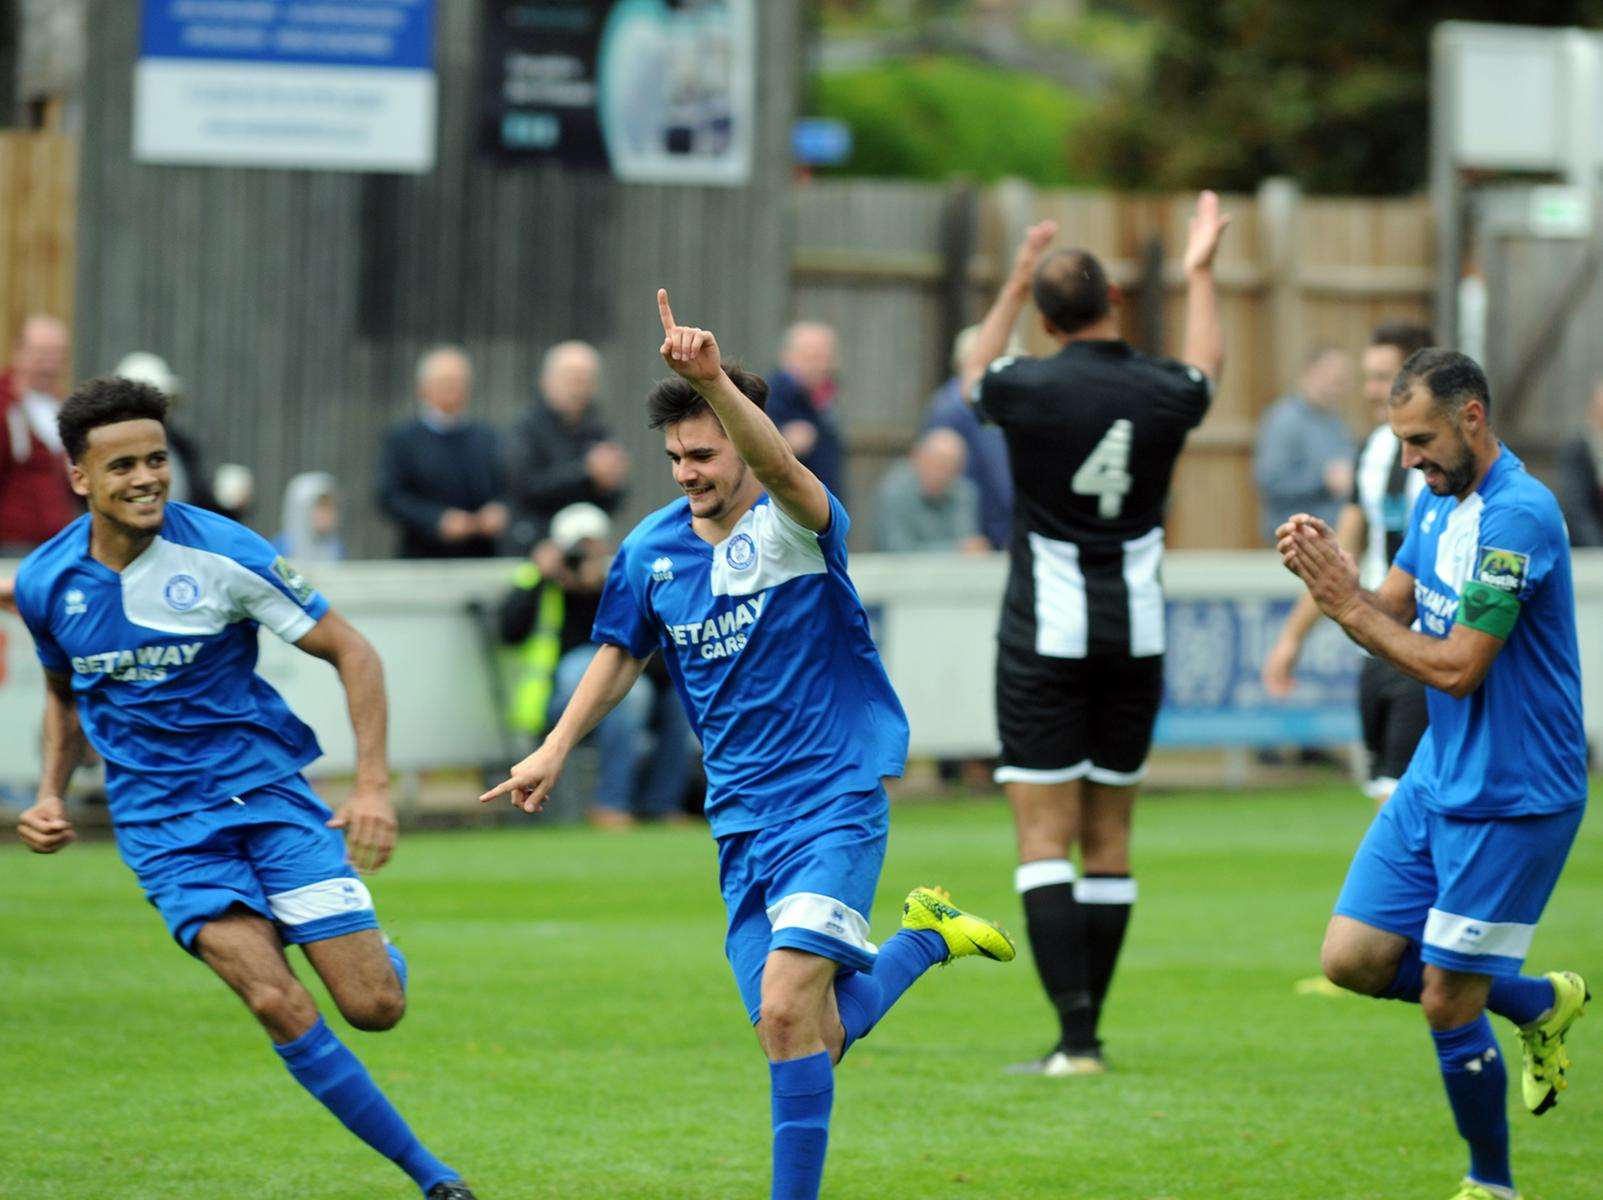 Bury Town's hat-tick hero Cemal Ramadan celebrates one of his goals Picture: Andy Abbott